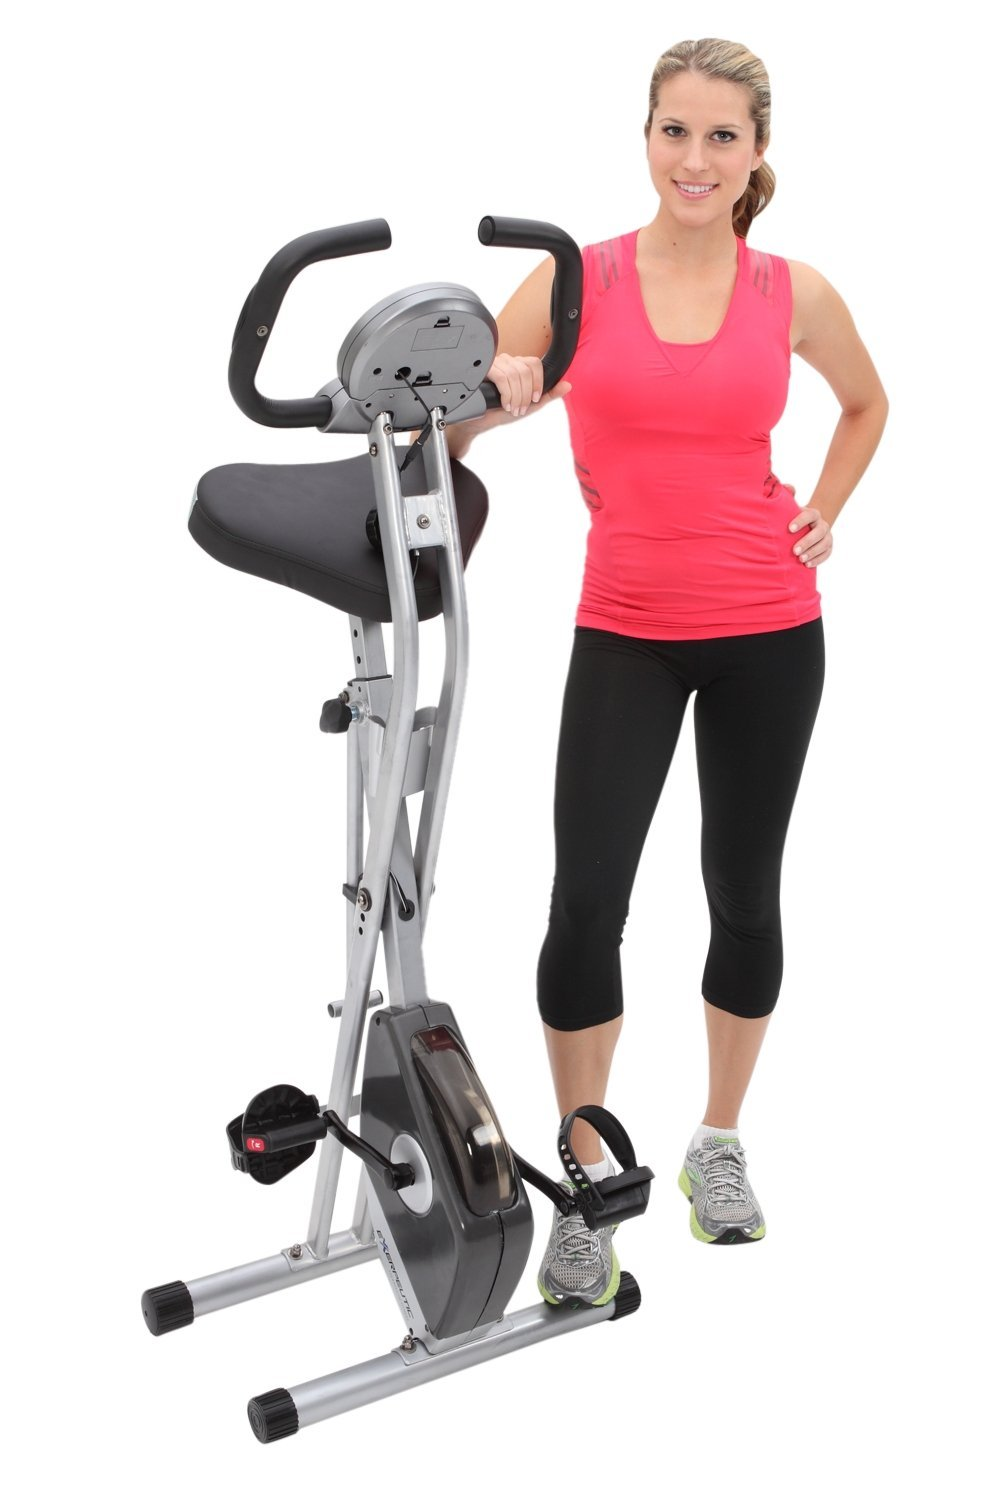 61X29aB6acL. SL1487 10 Best Exercise Bikes for Weight Loss 2021: Best Exercise Bike to Lose Weight